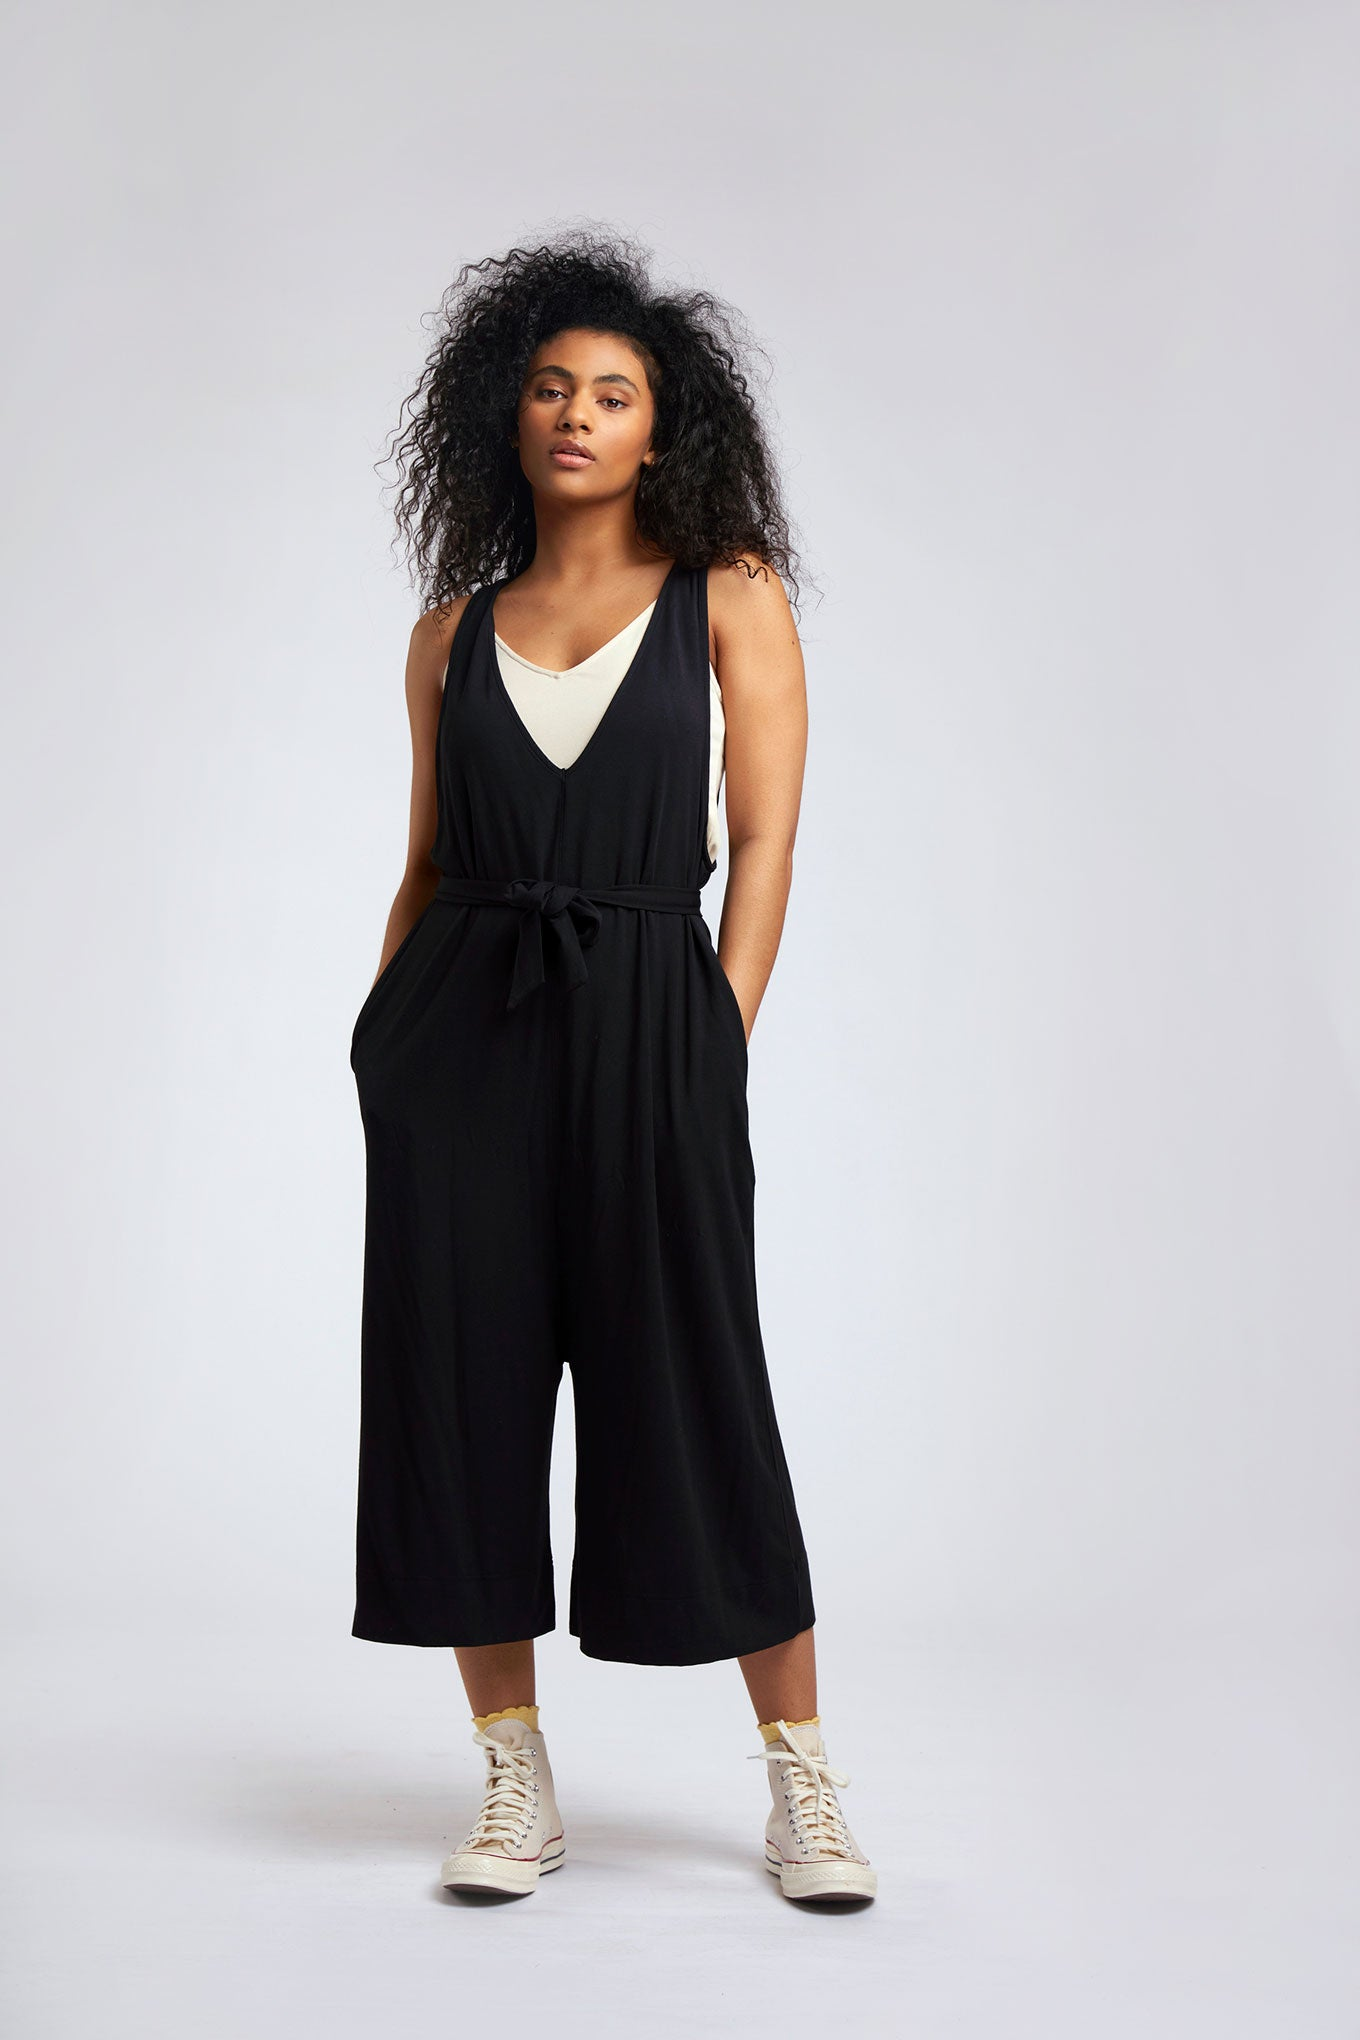 MOLLIE Modal Jumpsuit Black